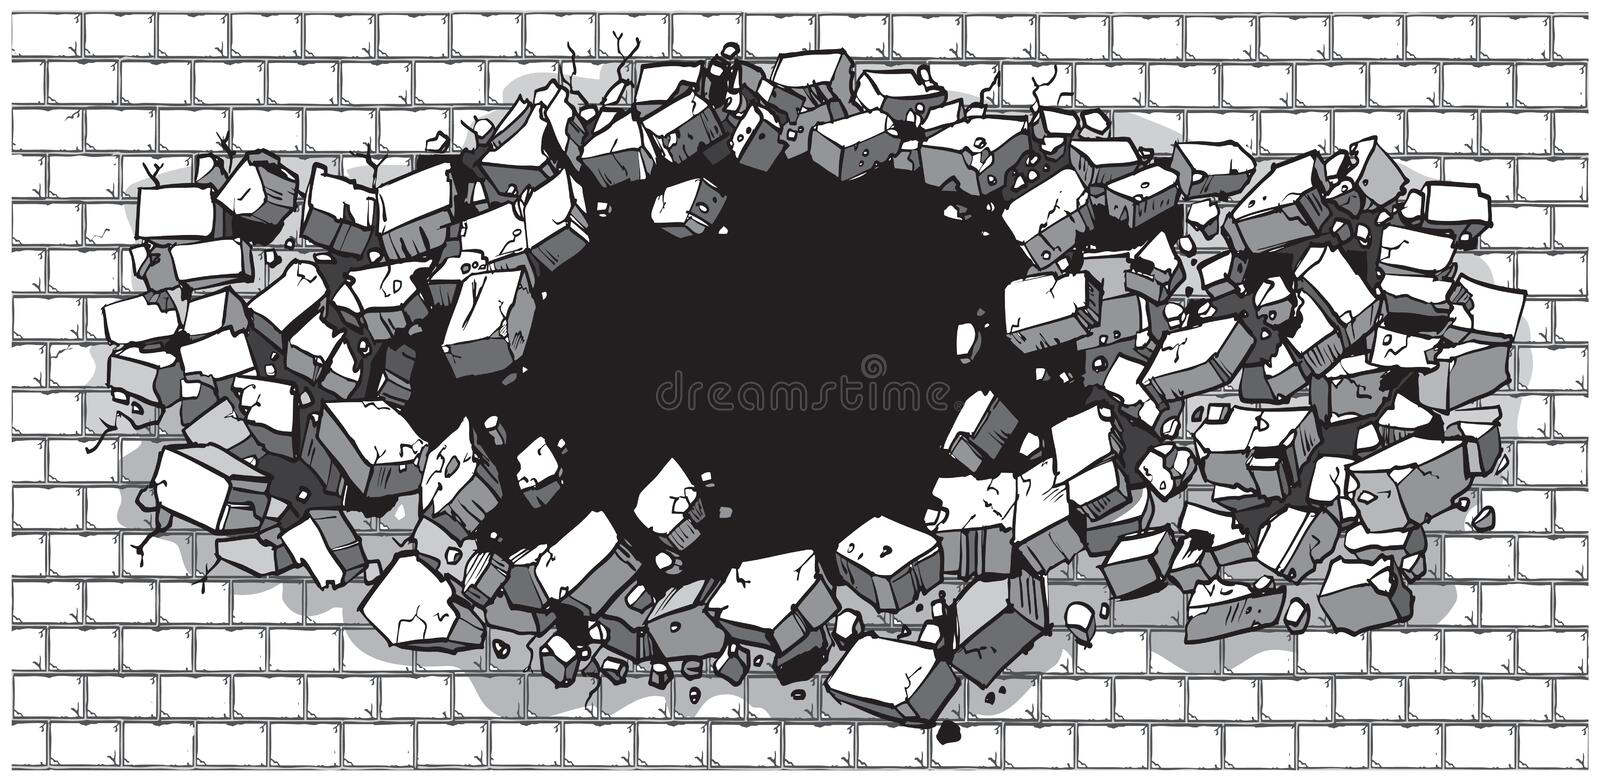 Trou traversant le mur de briques large illustration libre de droits